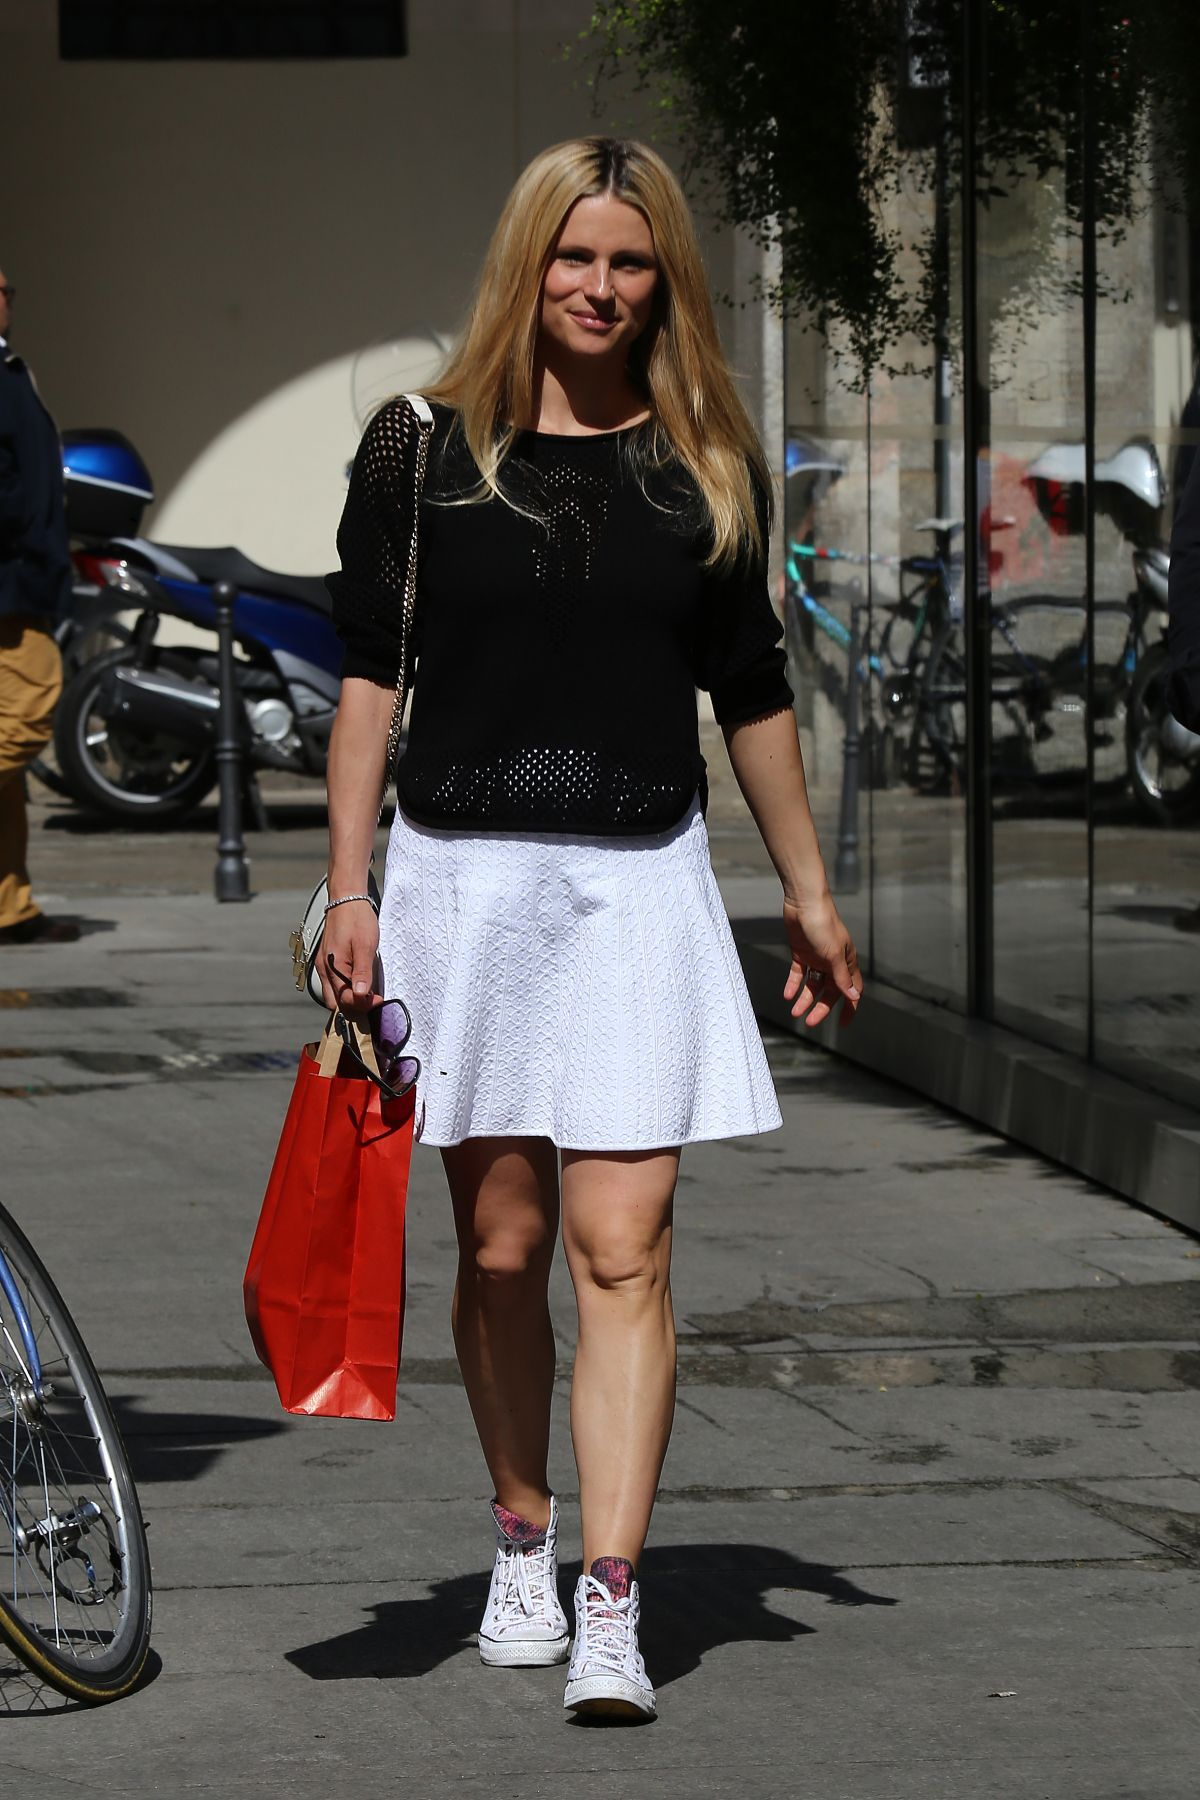 MICHELLE HUNZIKER Out Shopping in Milan 04/22/2015 - HawtCelebs ...